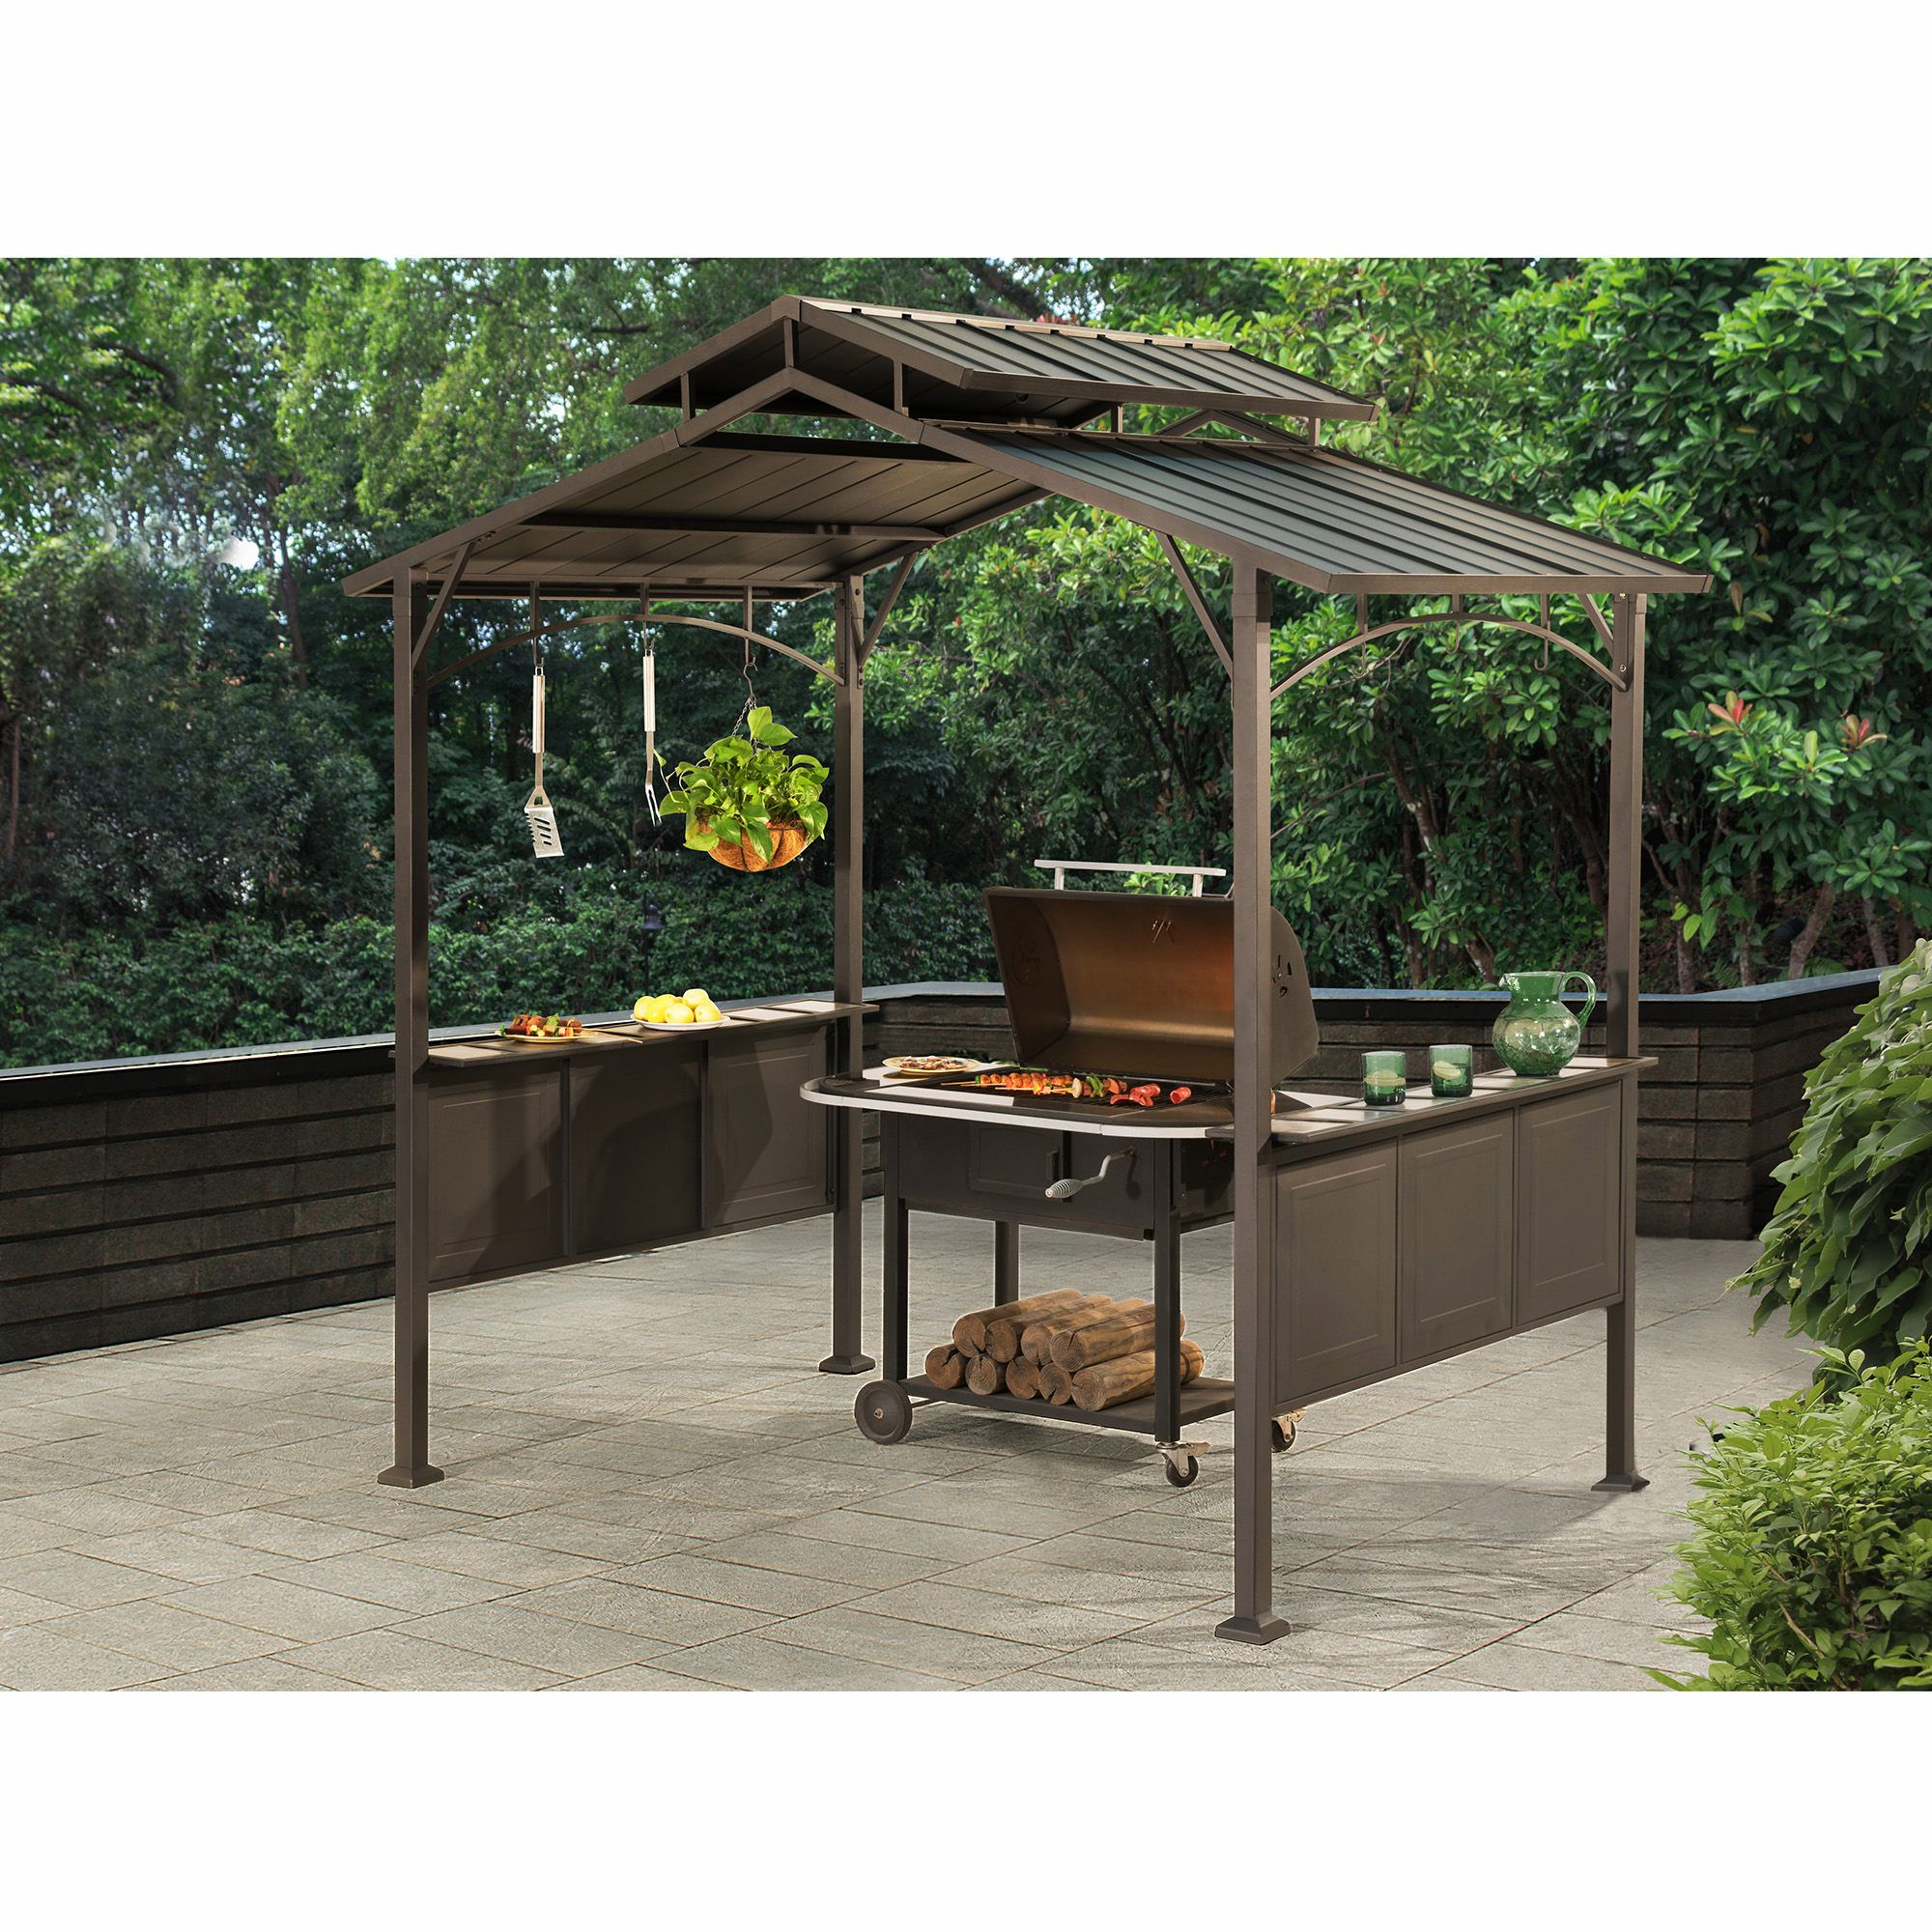 Sunjoy 8x5 Kent Hardtop Grill Gazebo Bjs Wholesale Club Grill Gazebo Patio Gazebo Canopy Outdoor